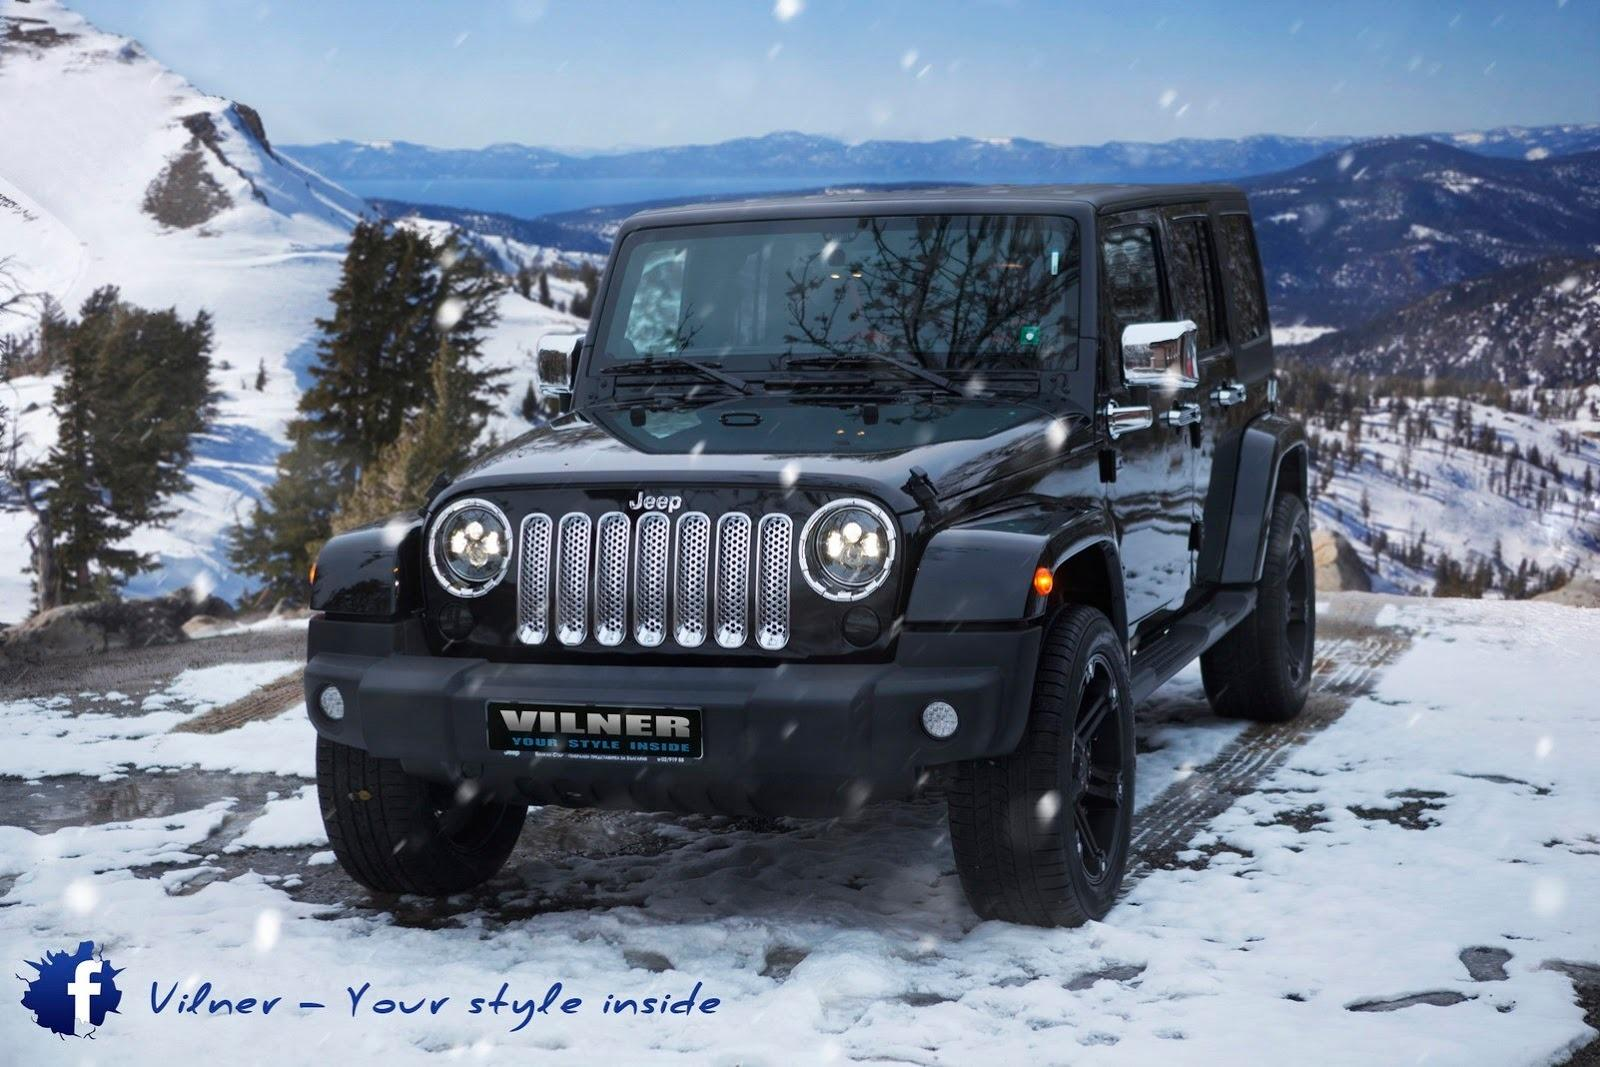 Types Of Jeeps >> 2014 Jeep Wrangler Sahara Unlimited By Vilner | Top Speed